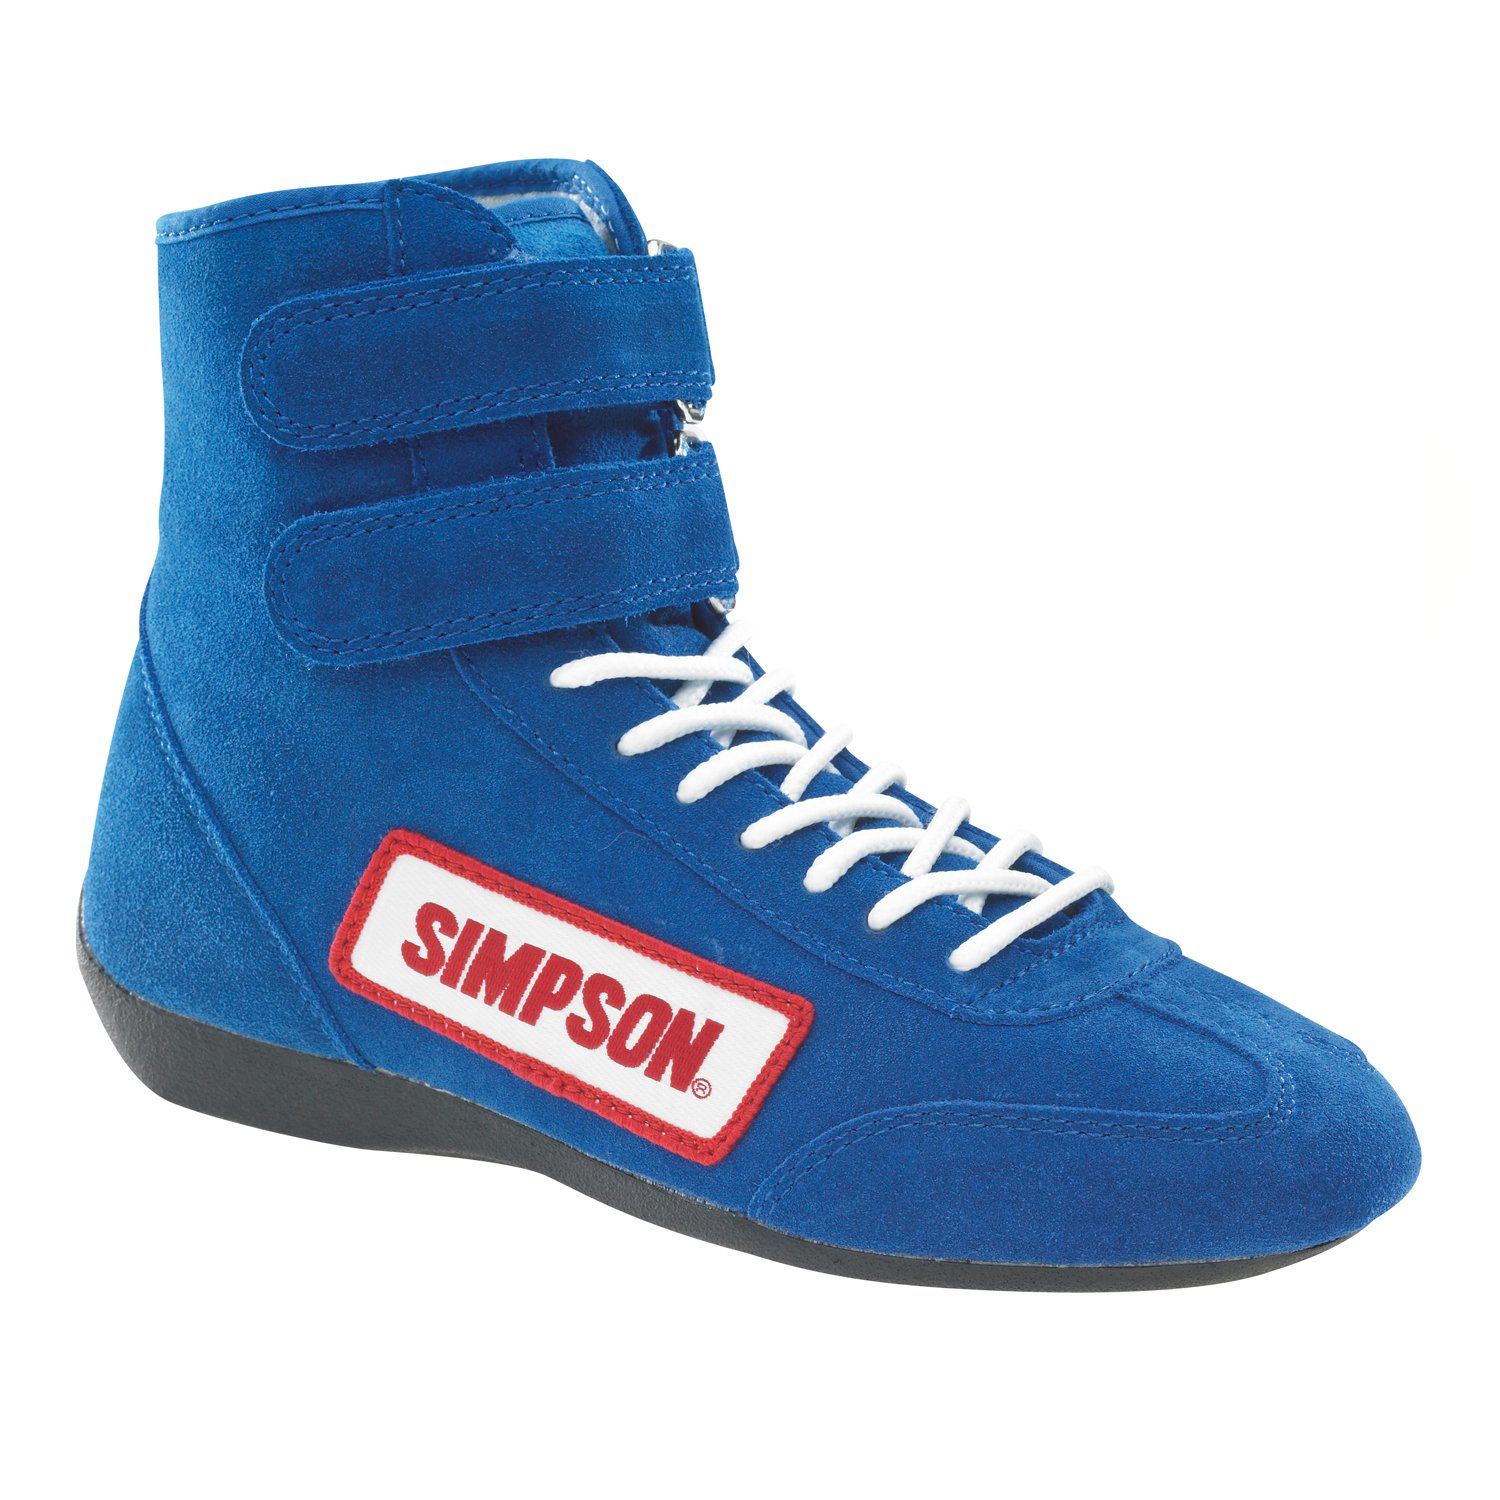 Simpson 28110BK The Hightop Black Size 11 SFI Approved Driving Shoes Simpson Racing